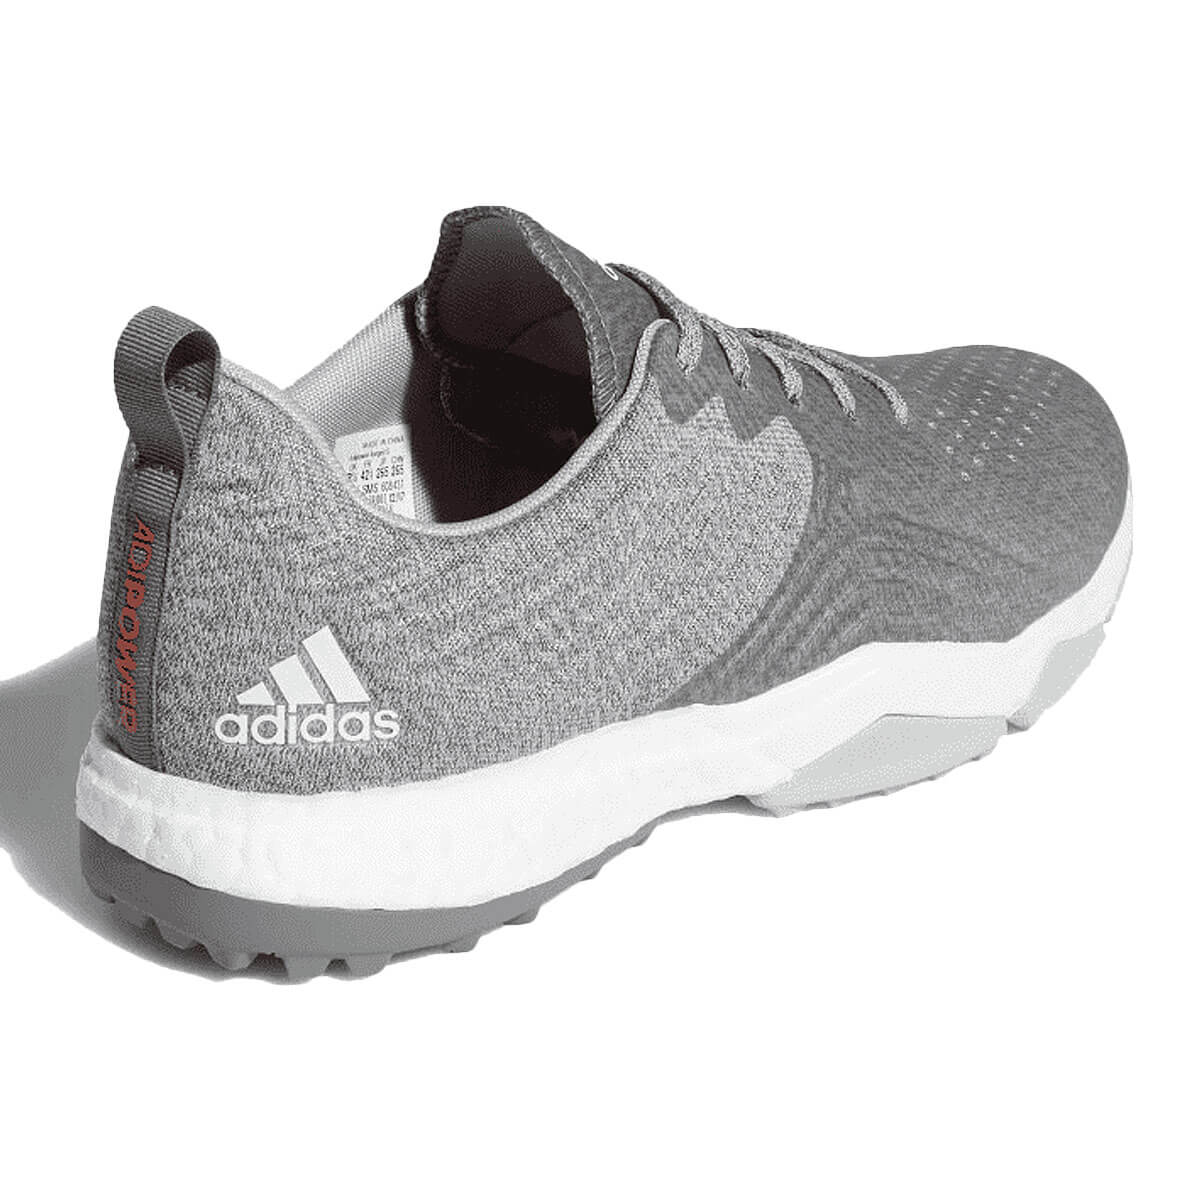 adidas-Golf-Mens-Adipower-Spikeless-BOOST-Stretch-Golf-Shoes-27-OFF-RRP thumbnail 7